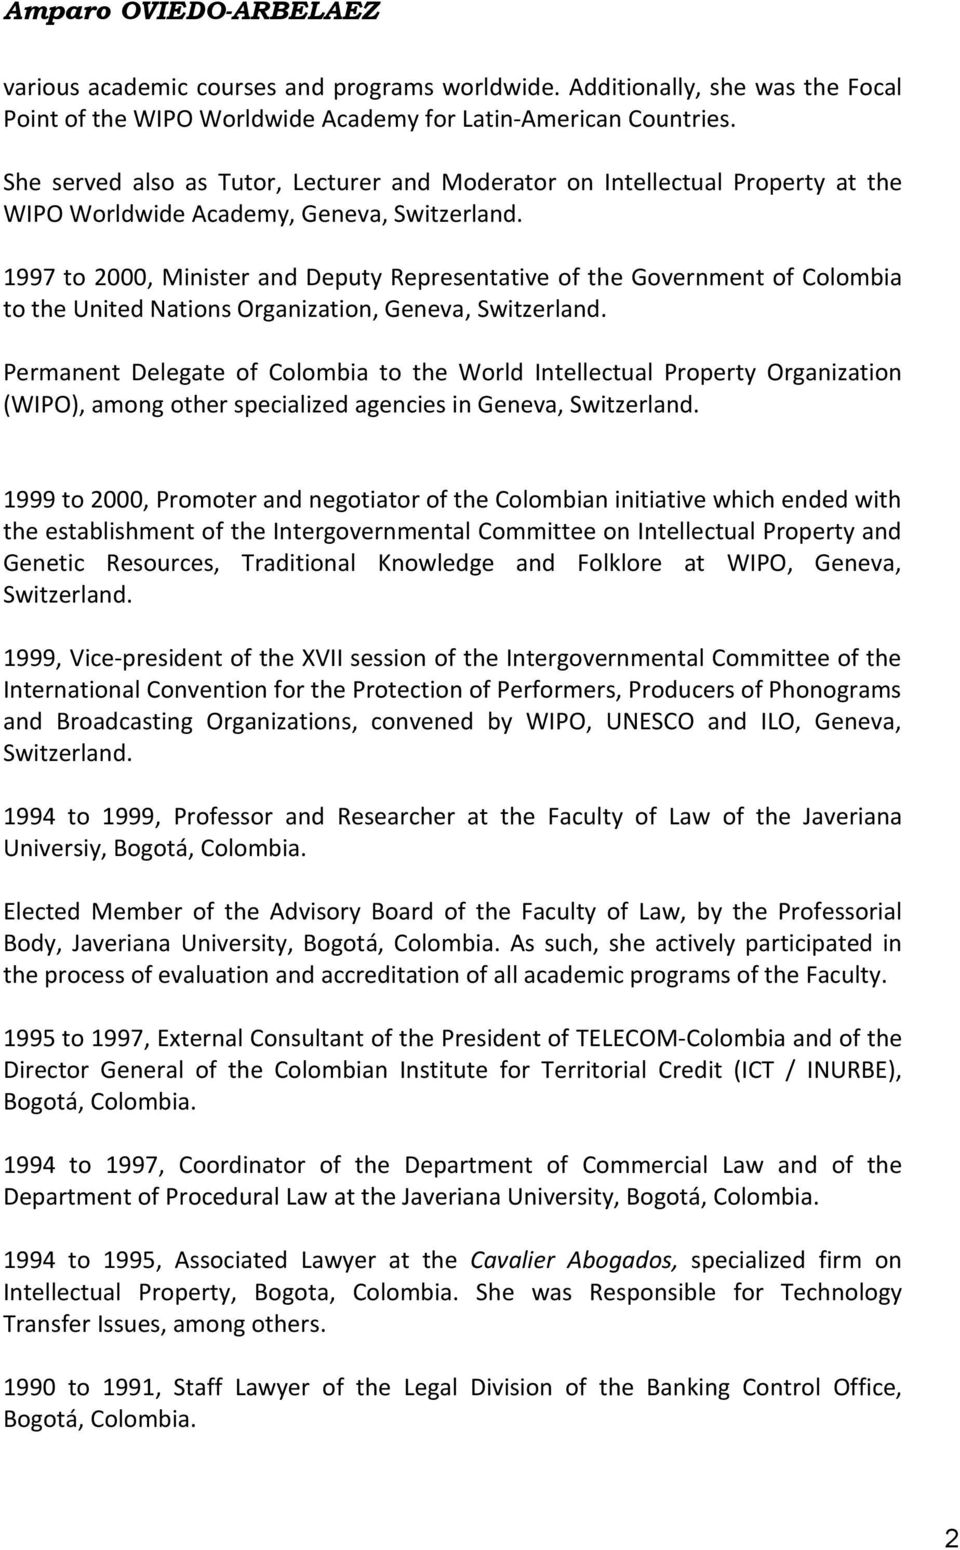 1997 to 2000, Minister and Deputy Representative of the Government of Colombia to the United Nations Organization, Geneva, Switzerland.